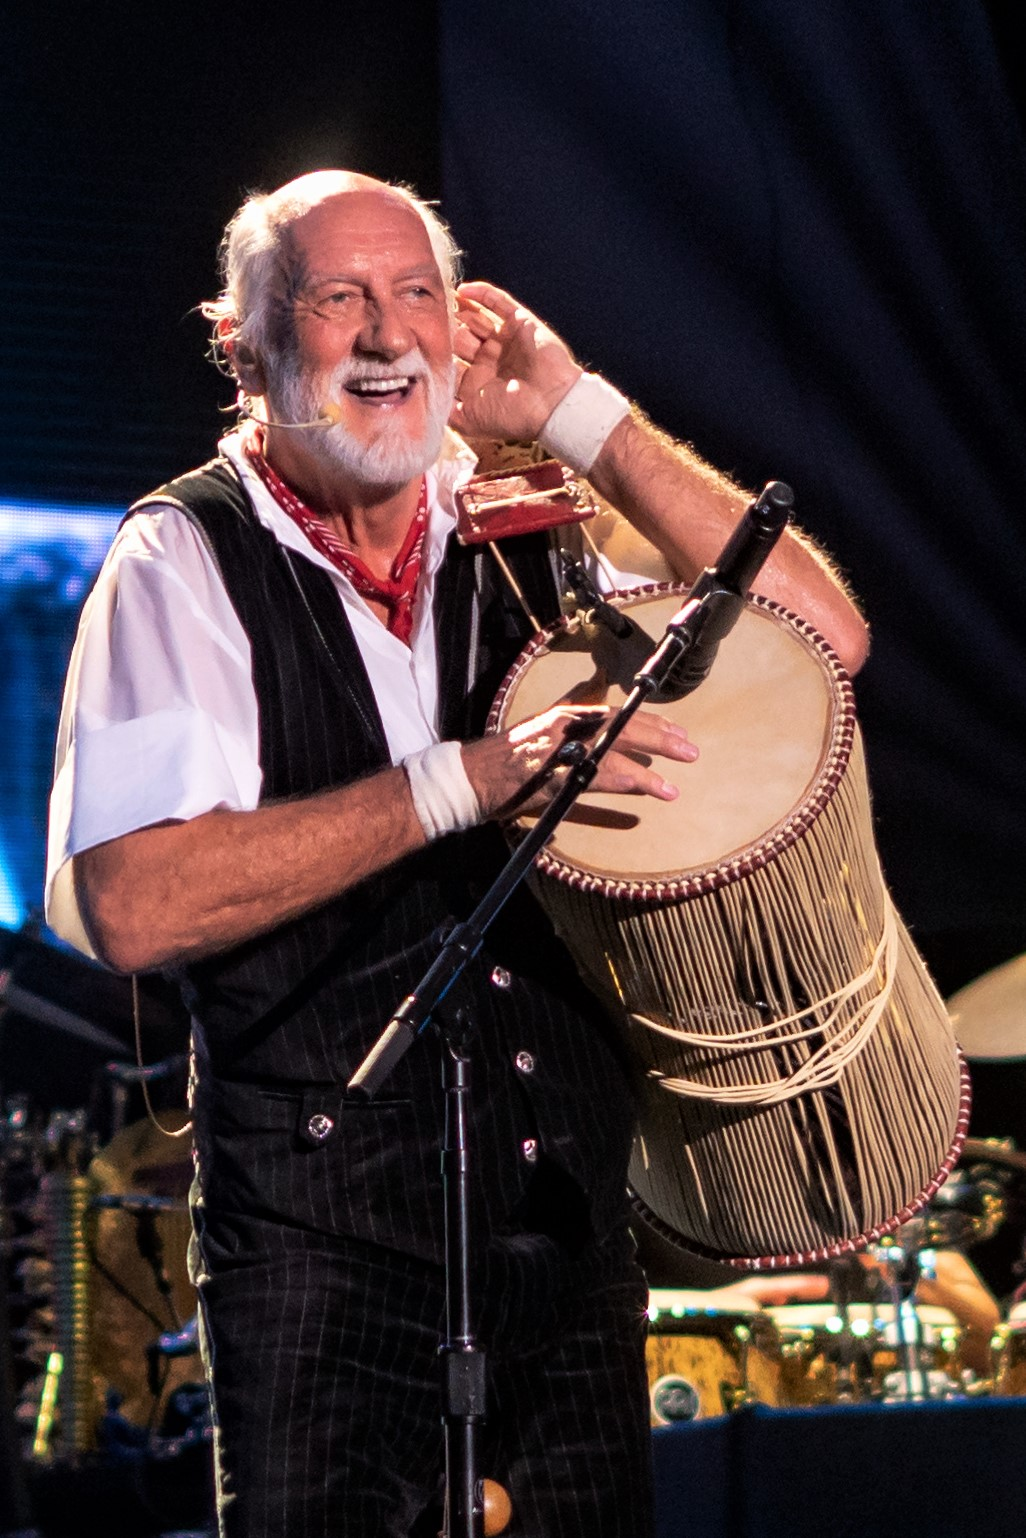 Fleetwood performing with [[Fleetwood Mac]] in 2018